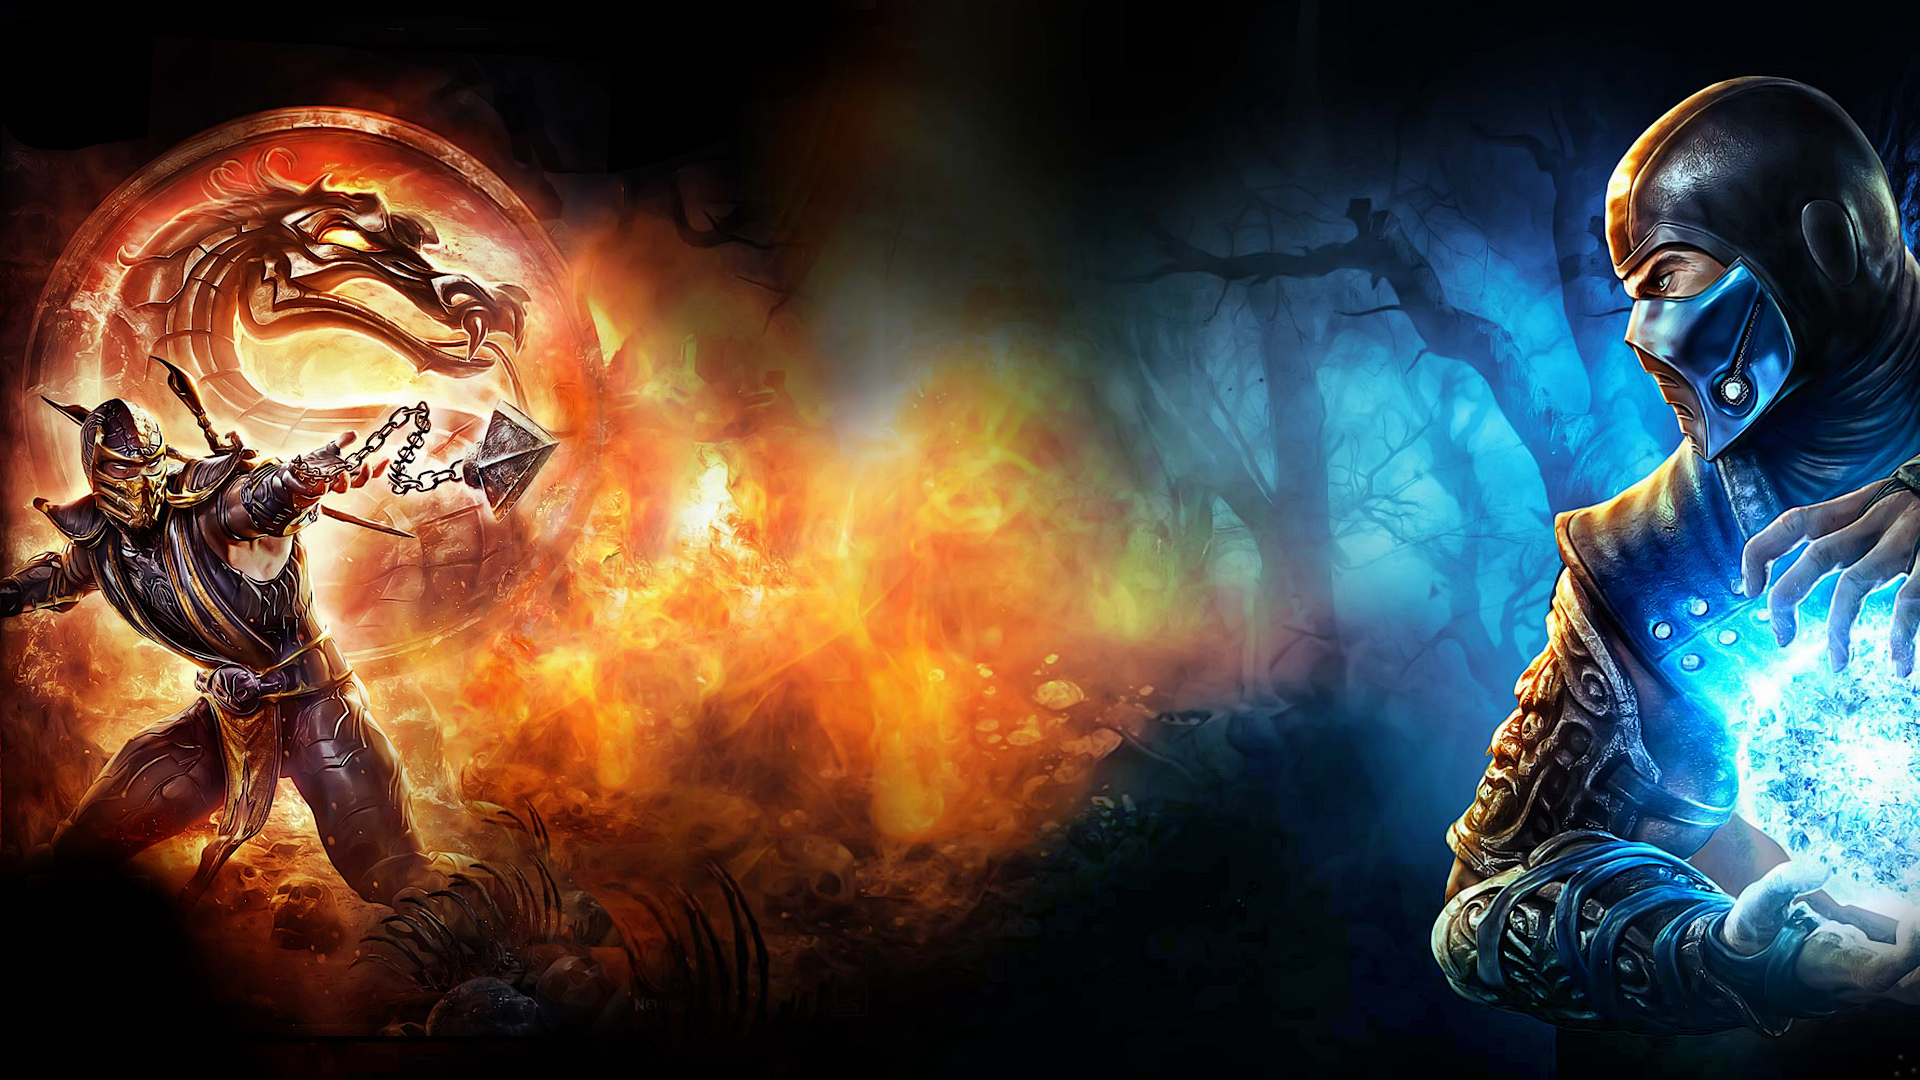 Cool Mortal Kombat Wallpaper